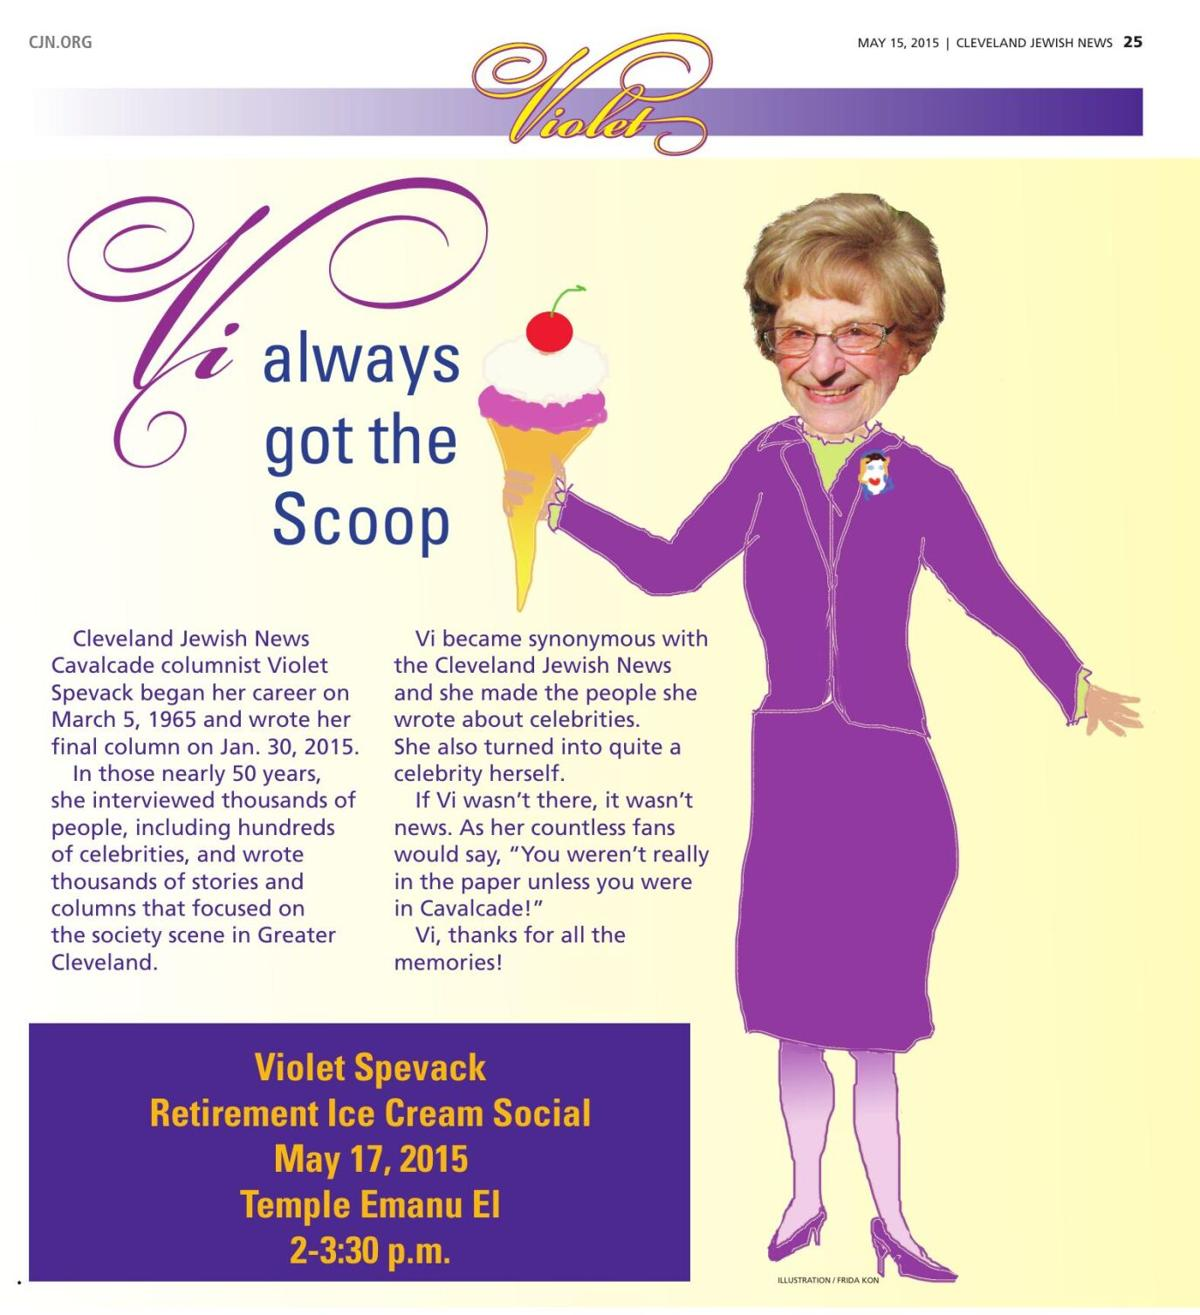 A CJN special section dedicated to Violet Spevack